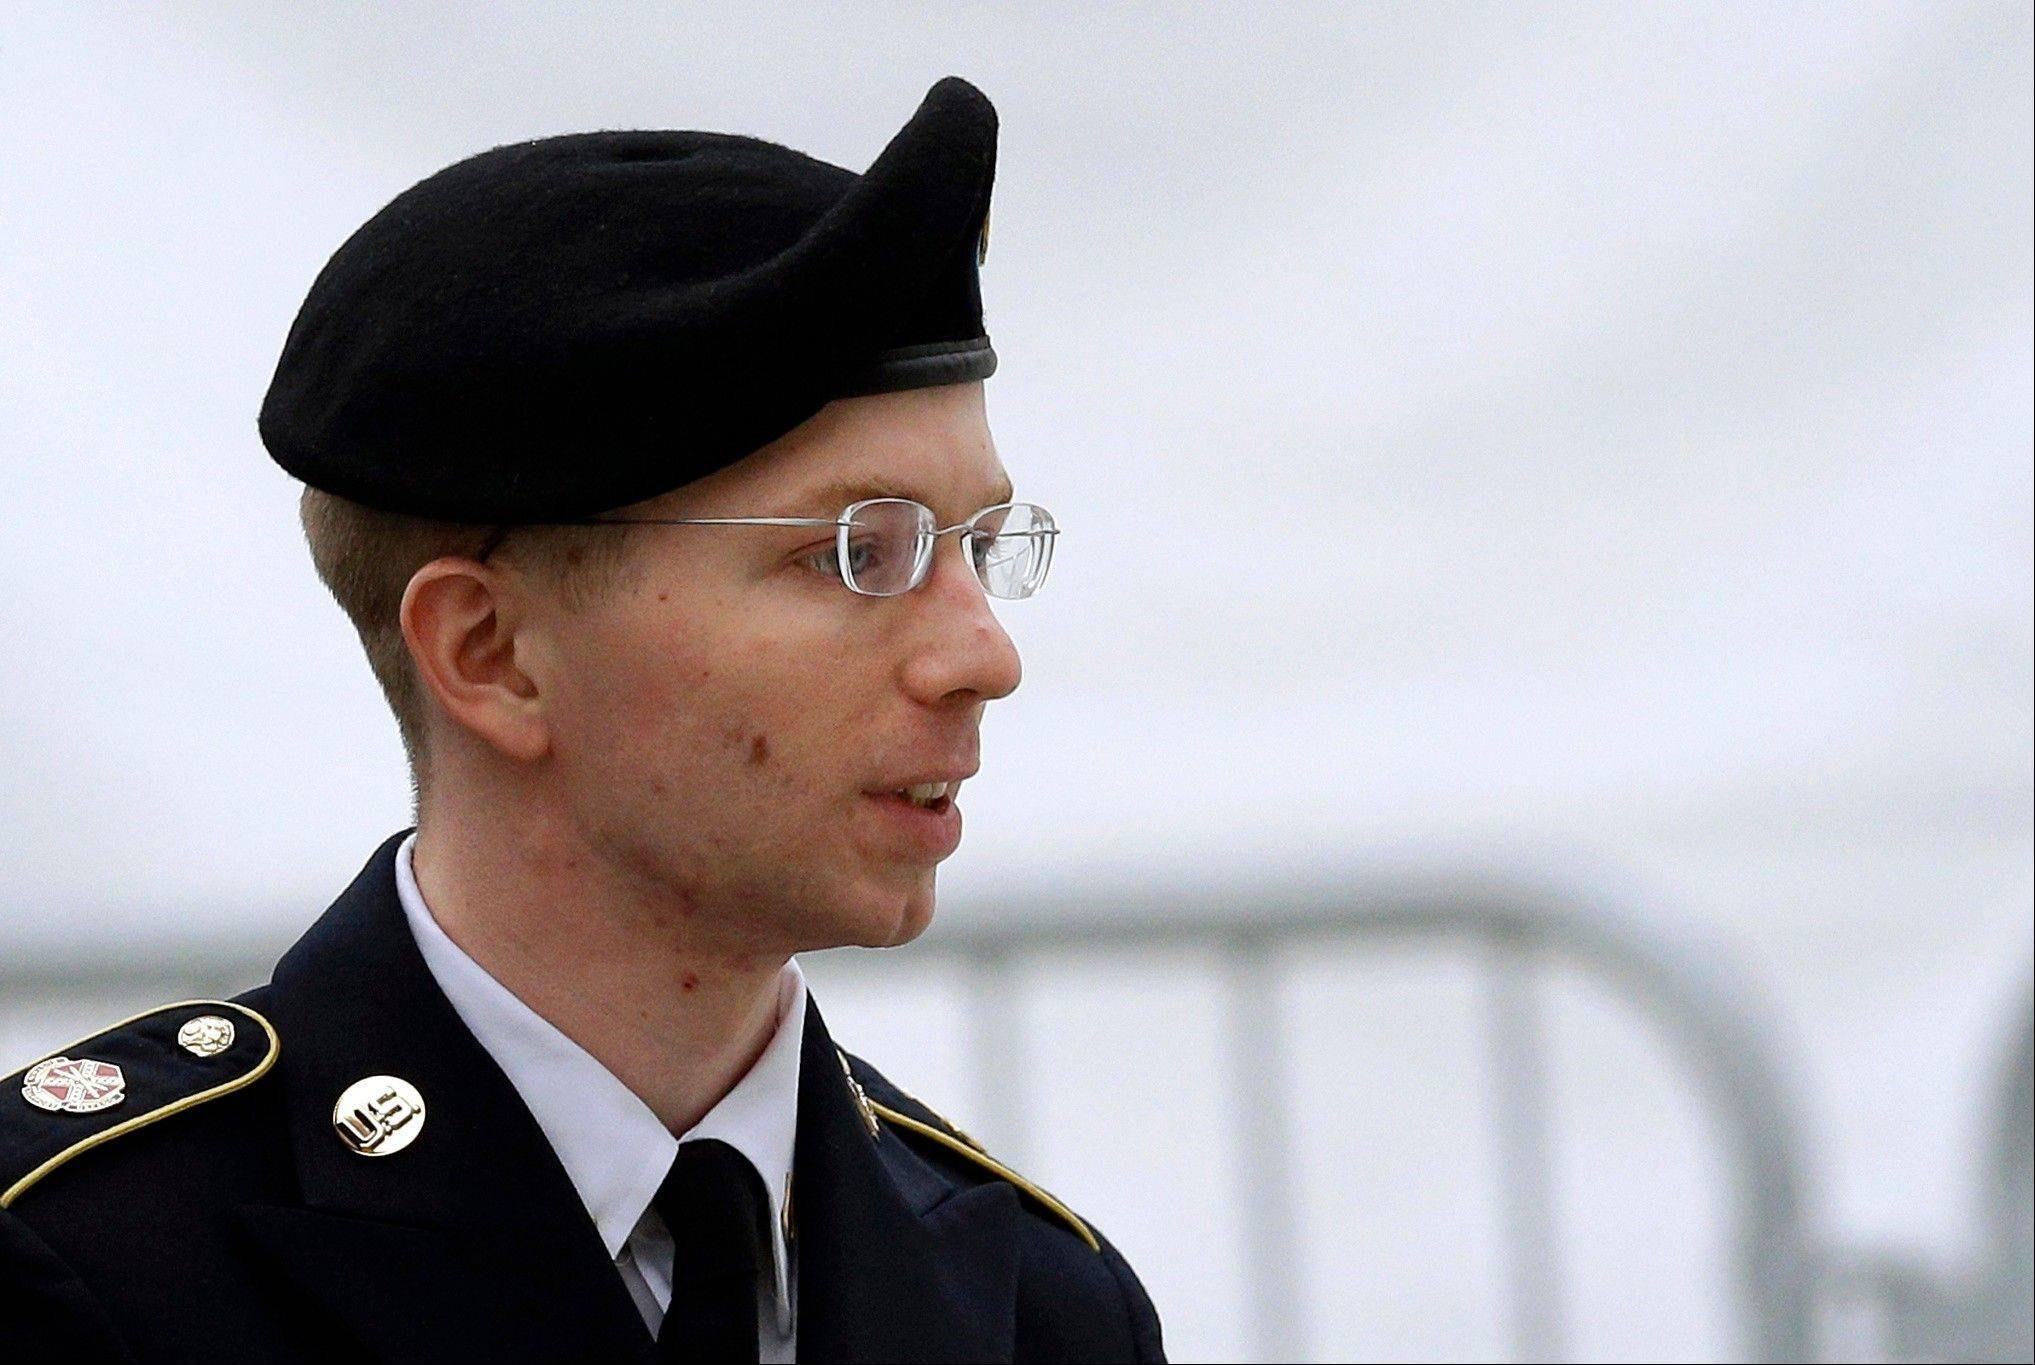 Army Pfc. Bradley Manning, who is scheduled to face a court martial beginning June 3, is accused of sending hundreds of thousands of classified records to WikiLeaks while working as an intelligence analyst in Baghdad.